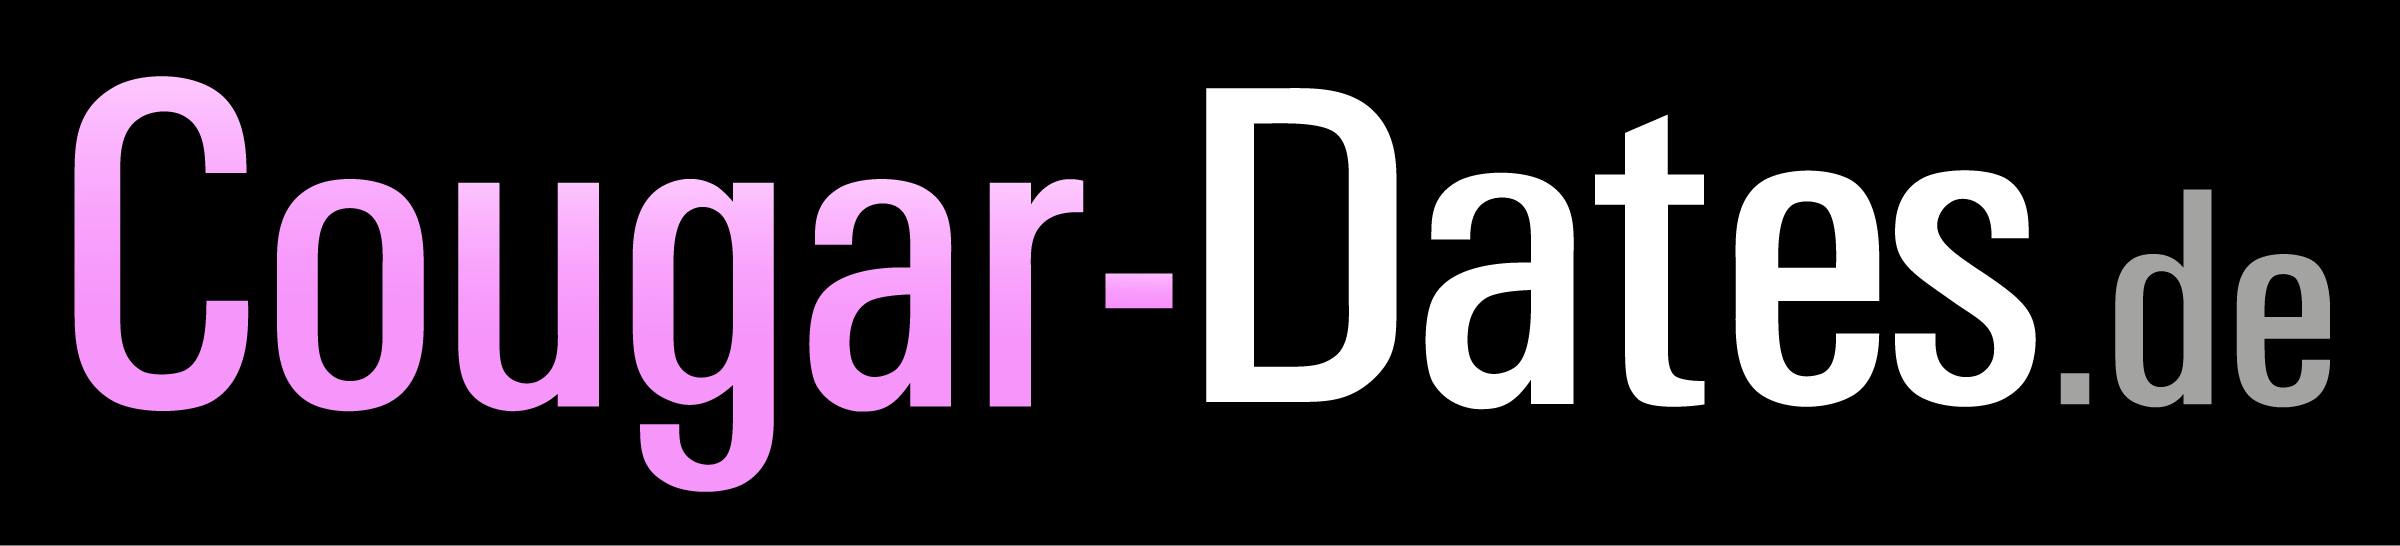 Cougar-Dates.de Logo